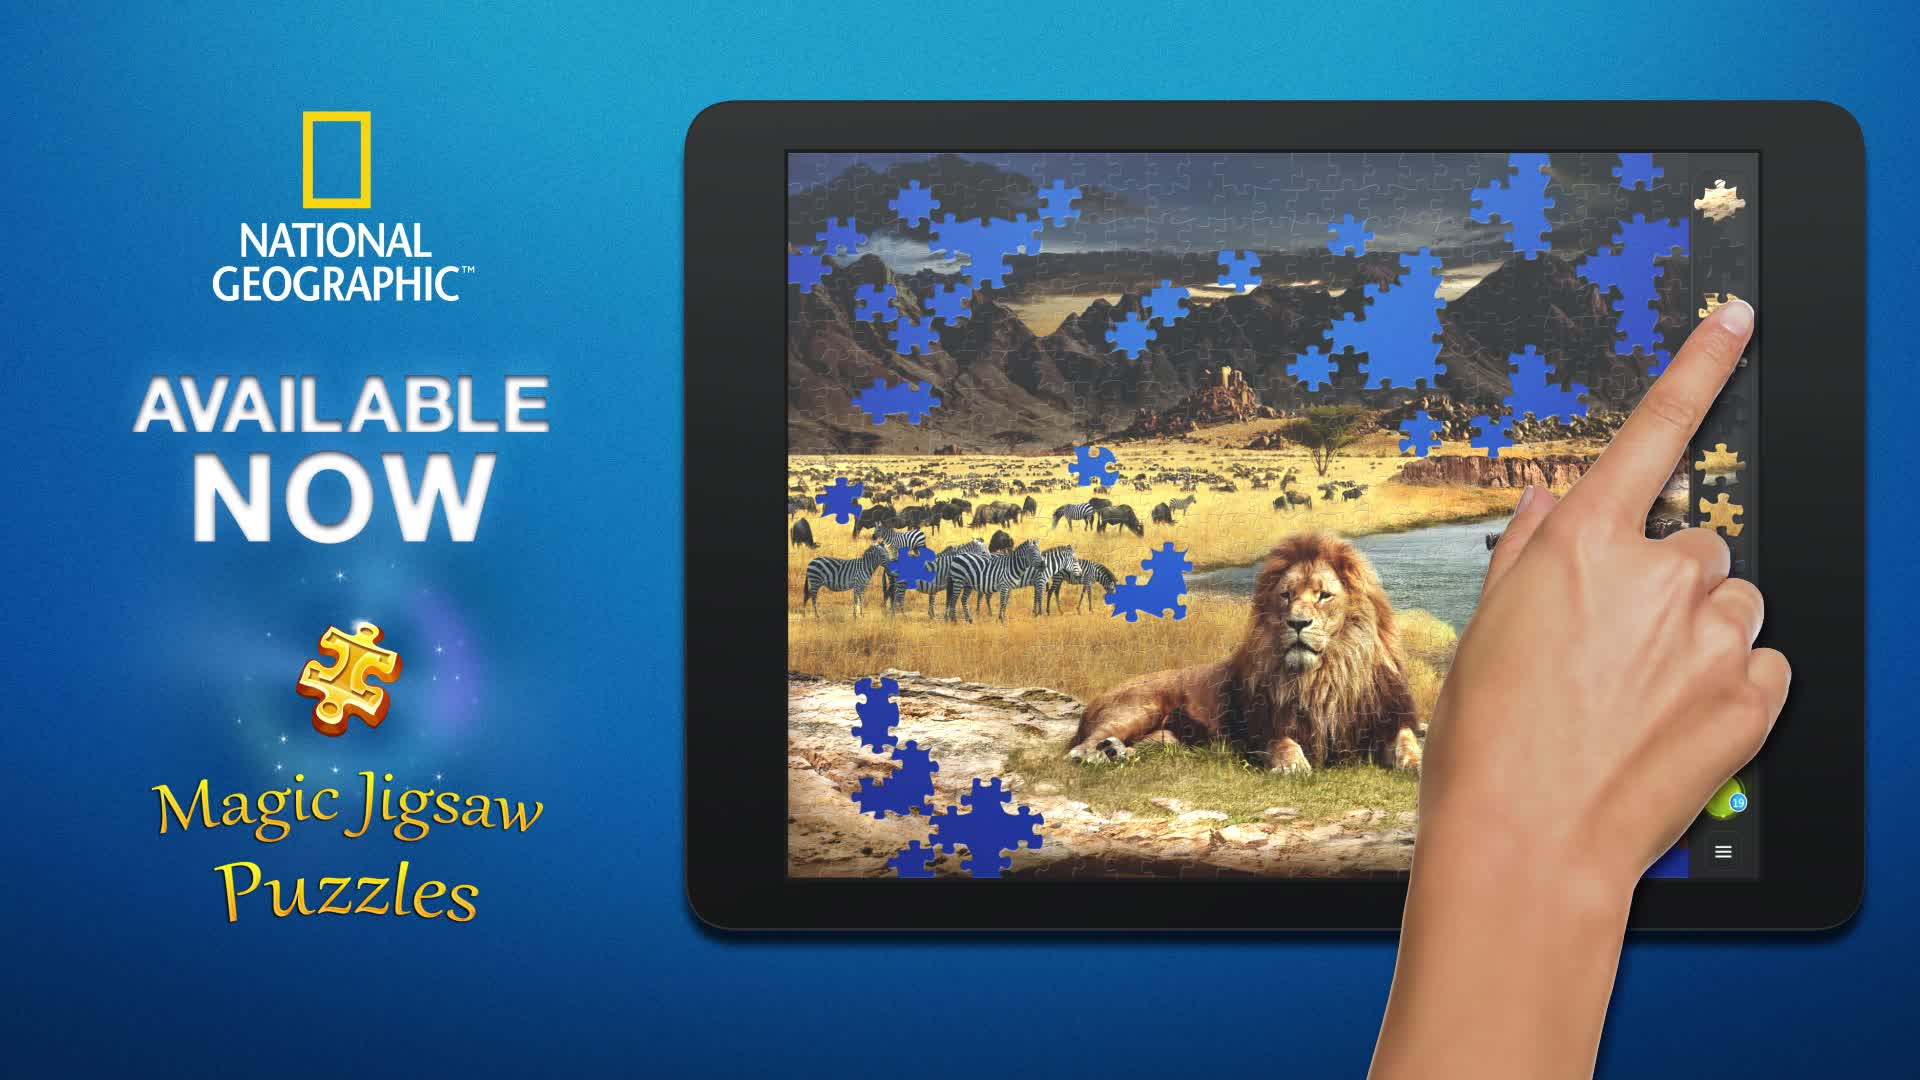 National Geographic and Magic Jigsaw Puzzles Partnership Video.